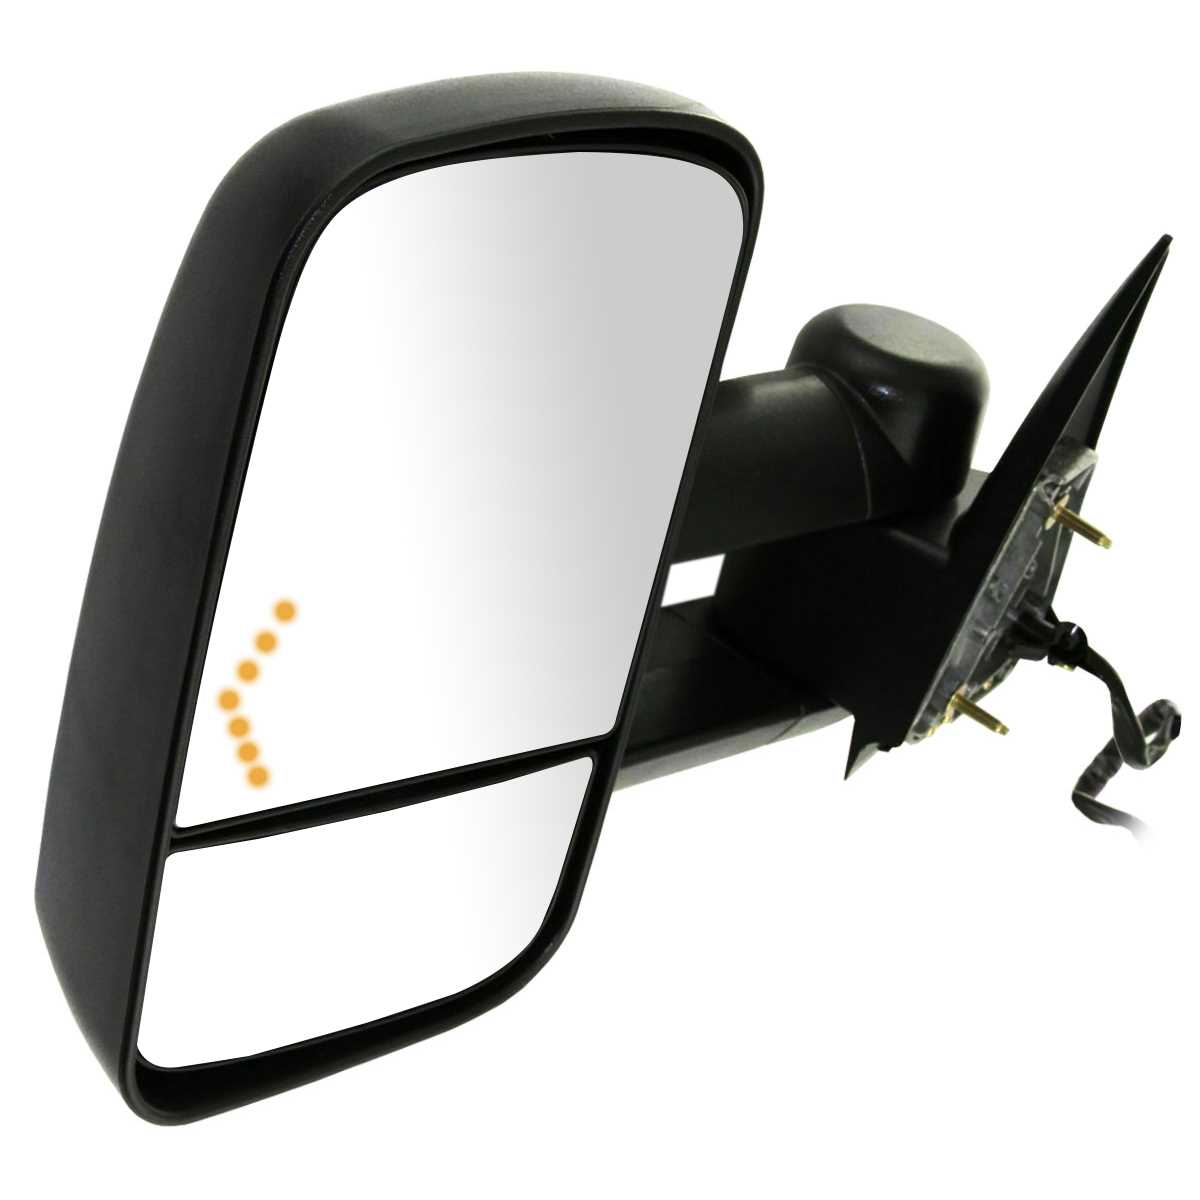 Power-Heated-LED-Signals-Towing-Mirrors-For-03-07-Chevy-Silverado-1500-2500-3500 thumbnail 3